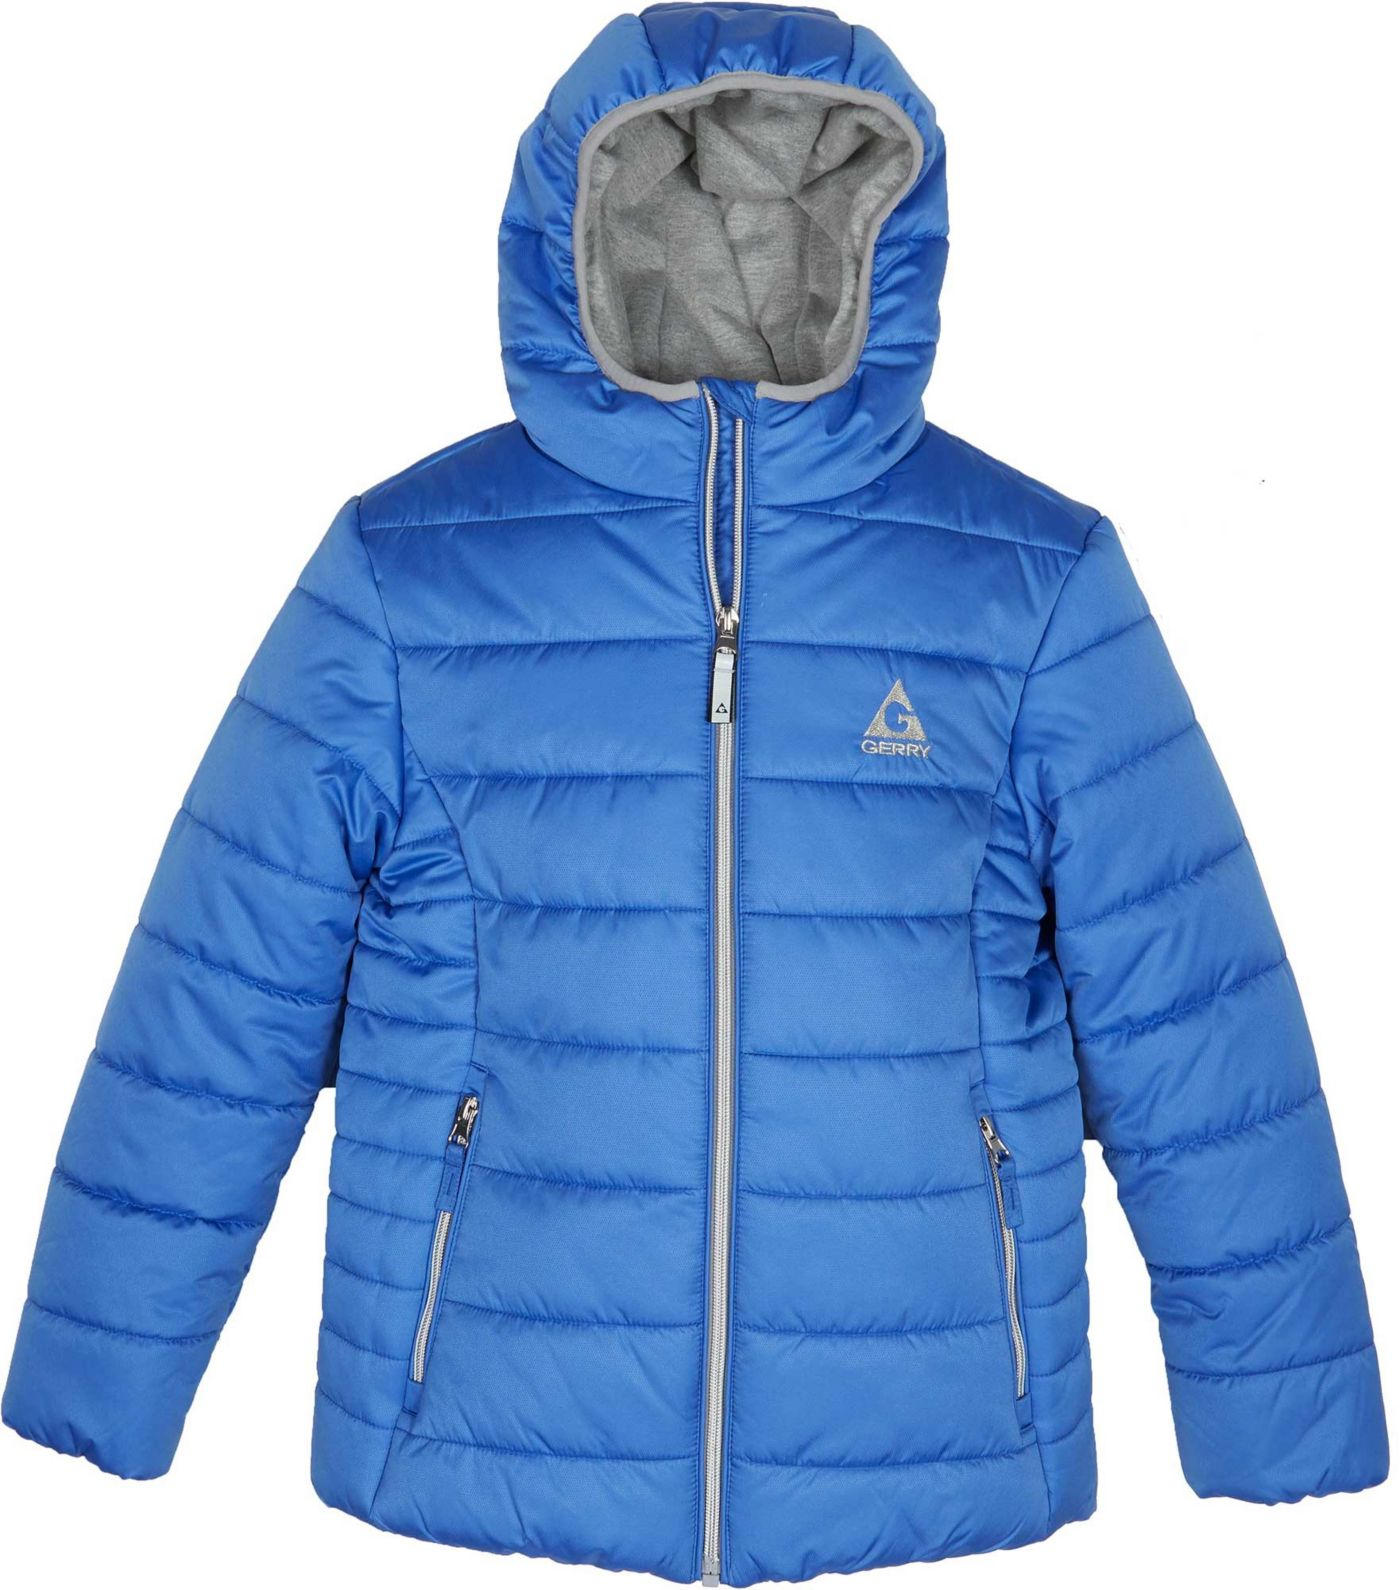 Gerry Girls' Irene Puffer Jacket